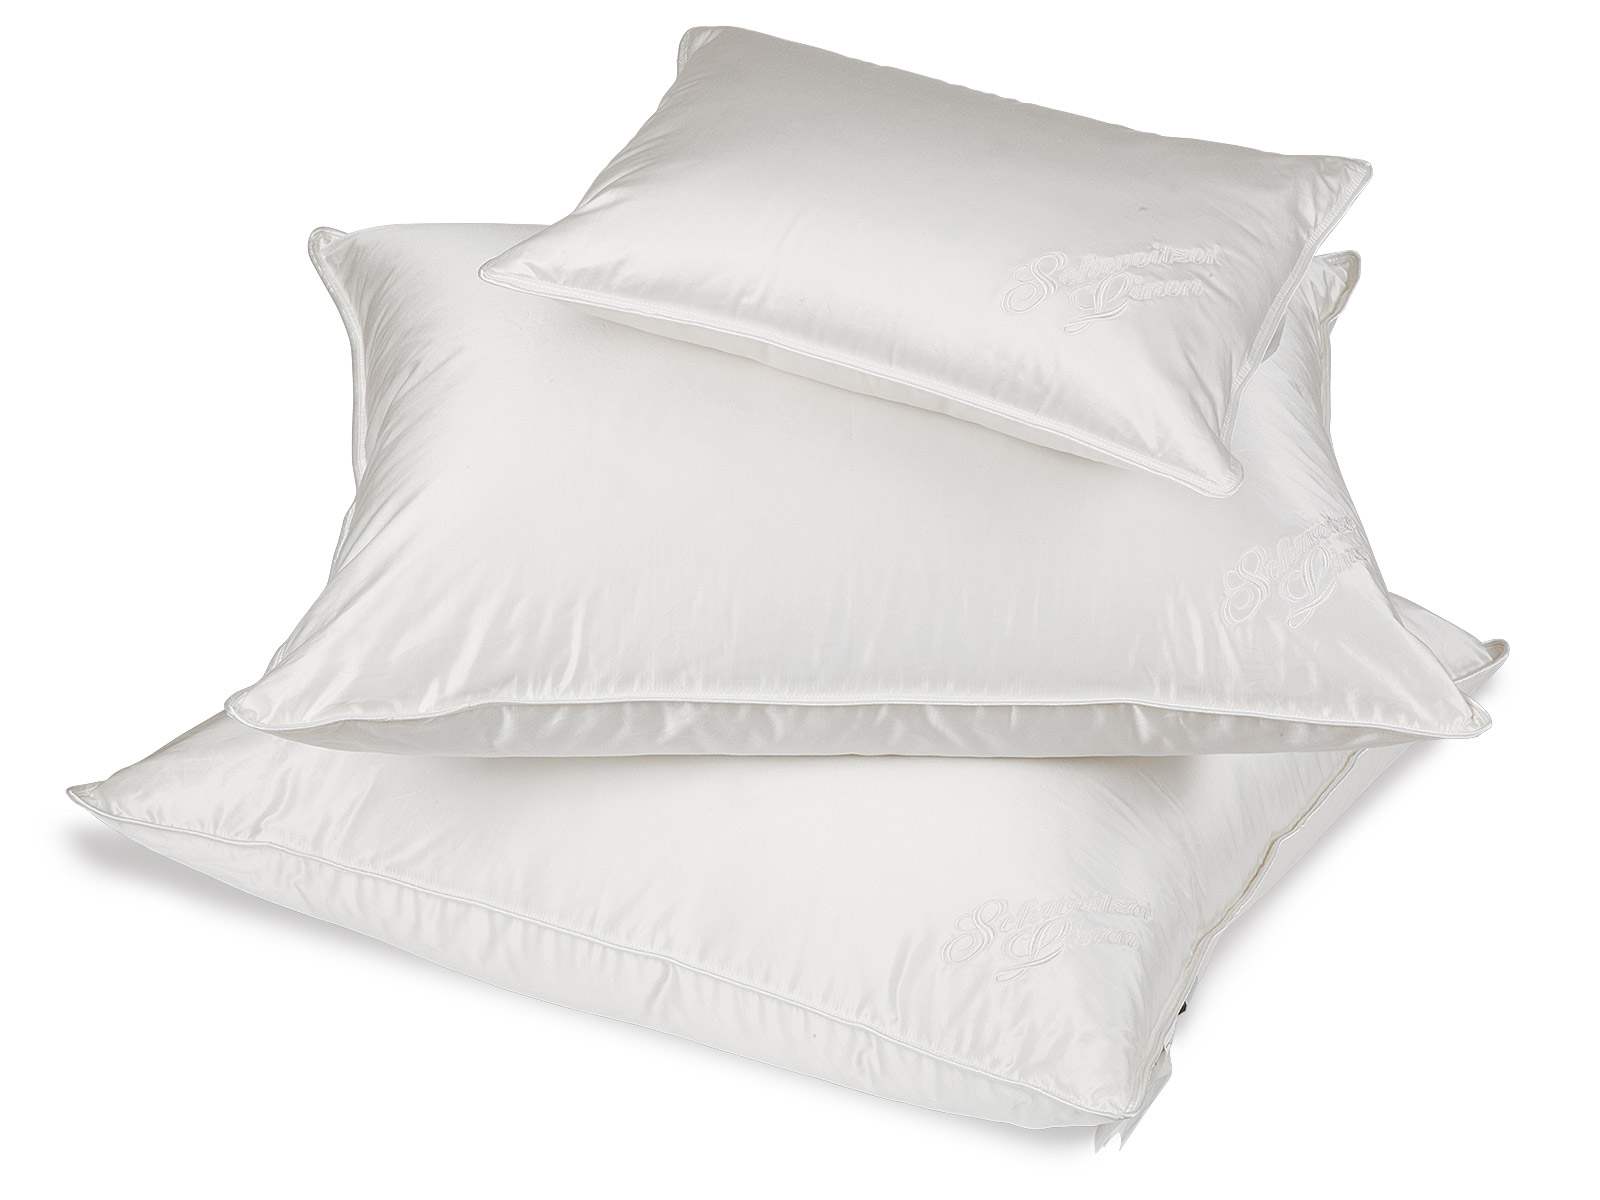 Pillow_Dynasty_1494.jpg